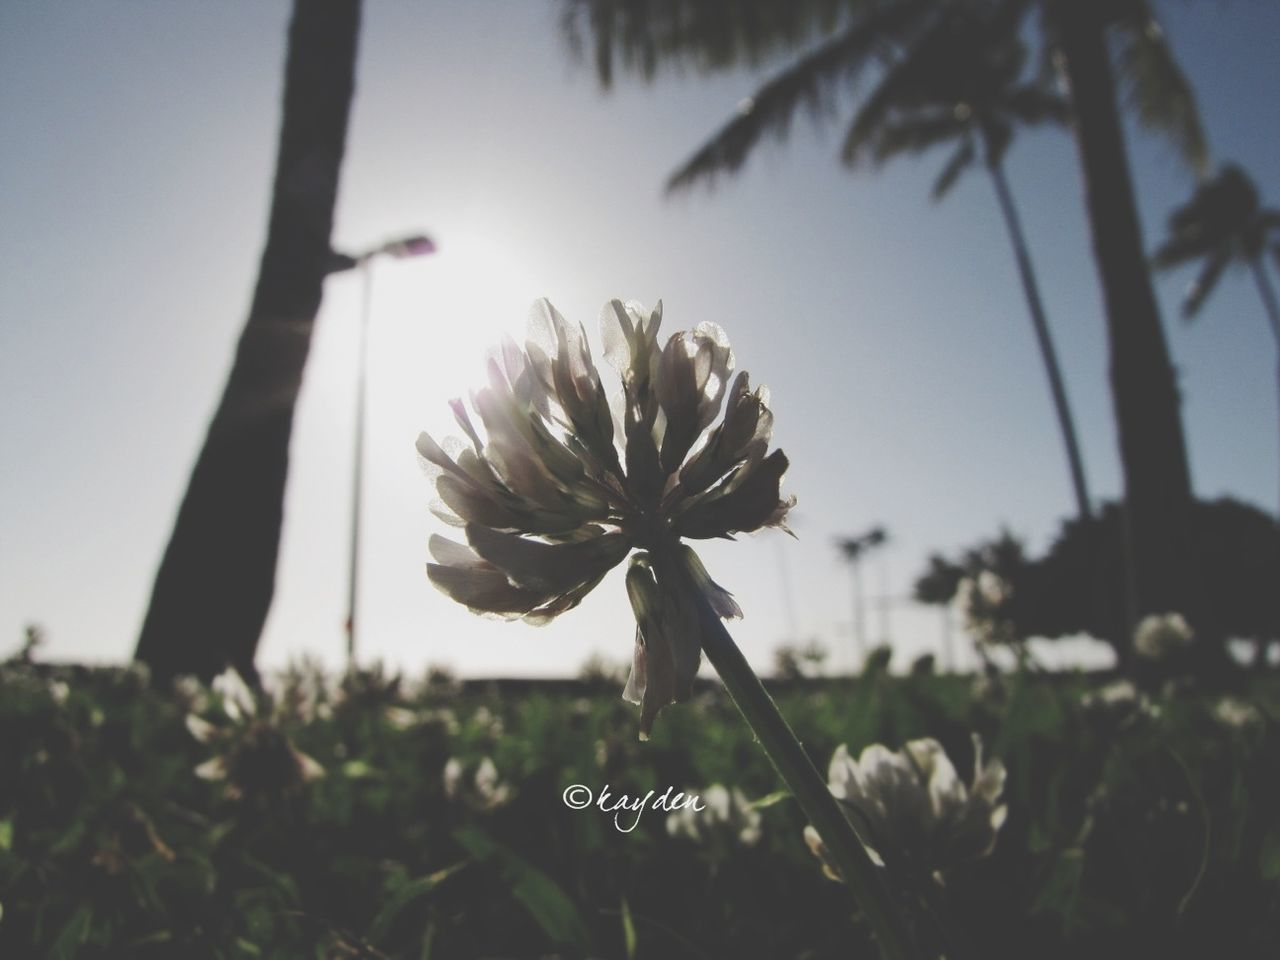 flower, growth, nature, fragility, beauty in nature, plant, freshness, petal, focus on foreground, stem, flower head, outdoors, no people, close-up, blooming, day, springtime, tree, sky